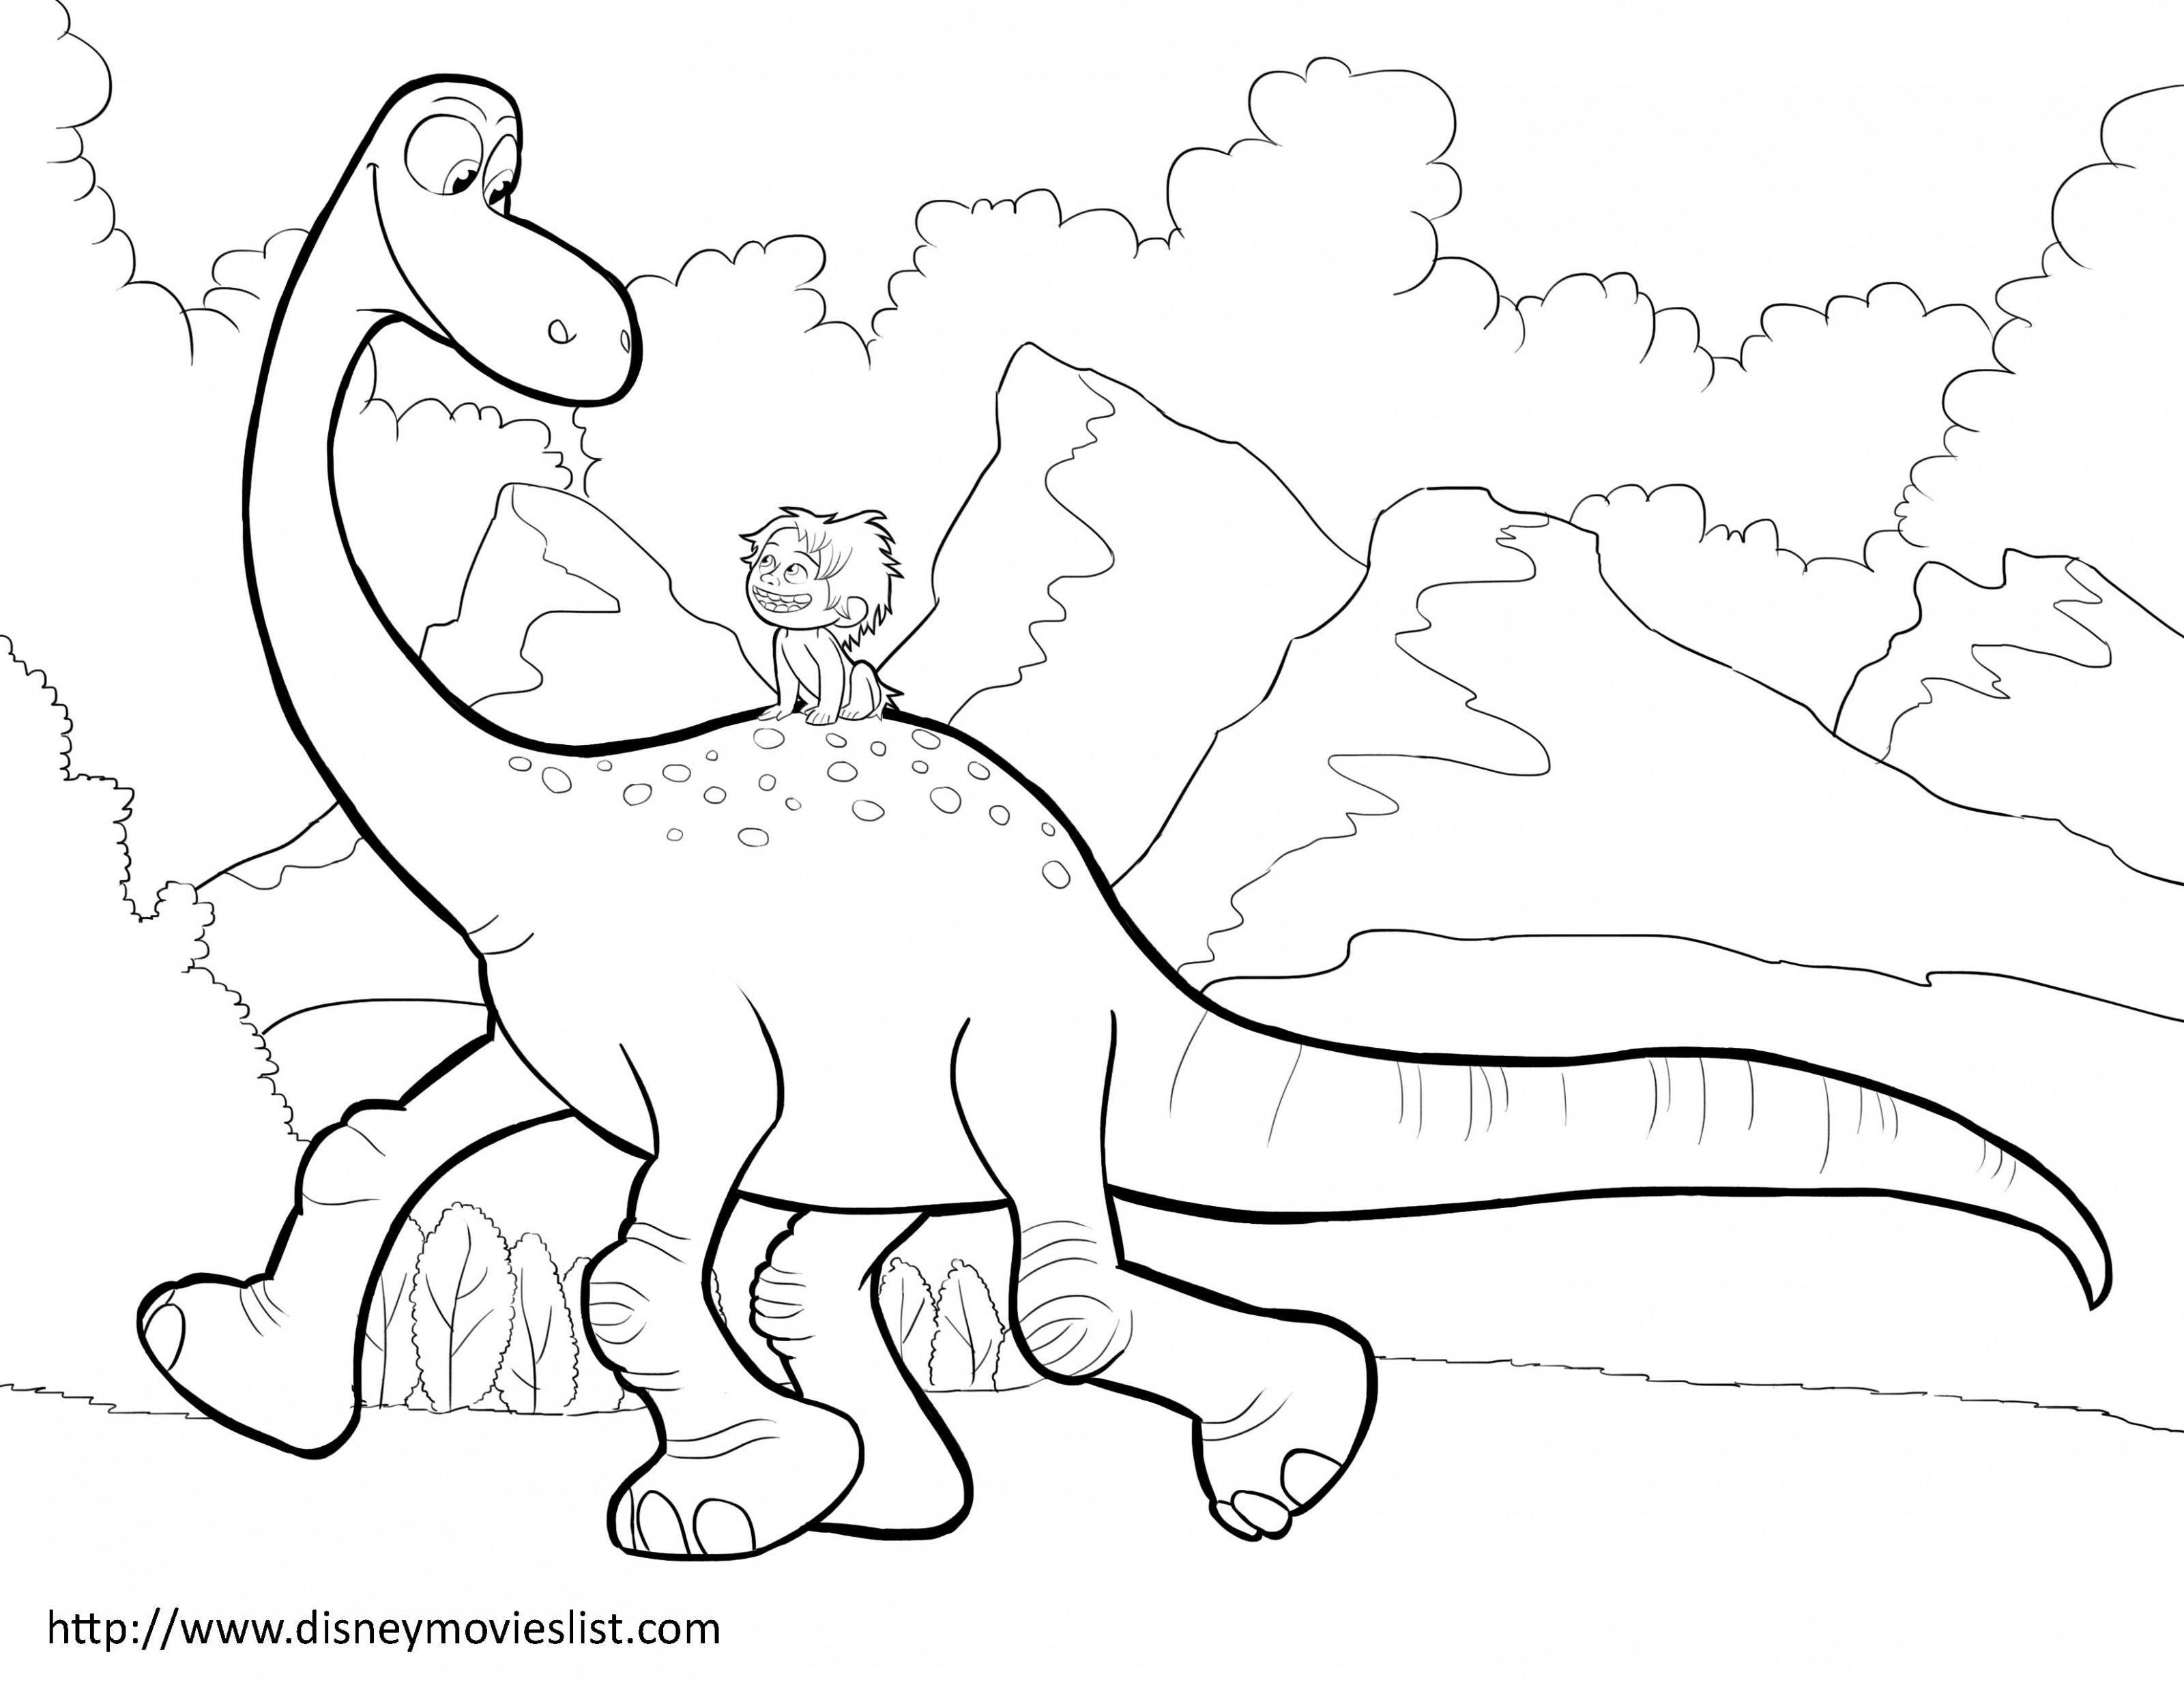 Pin by Christel Orwig on Painting maybe's | Dinosaur coloring pages ..